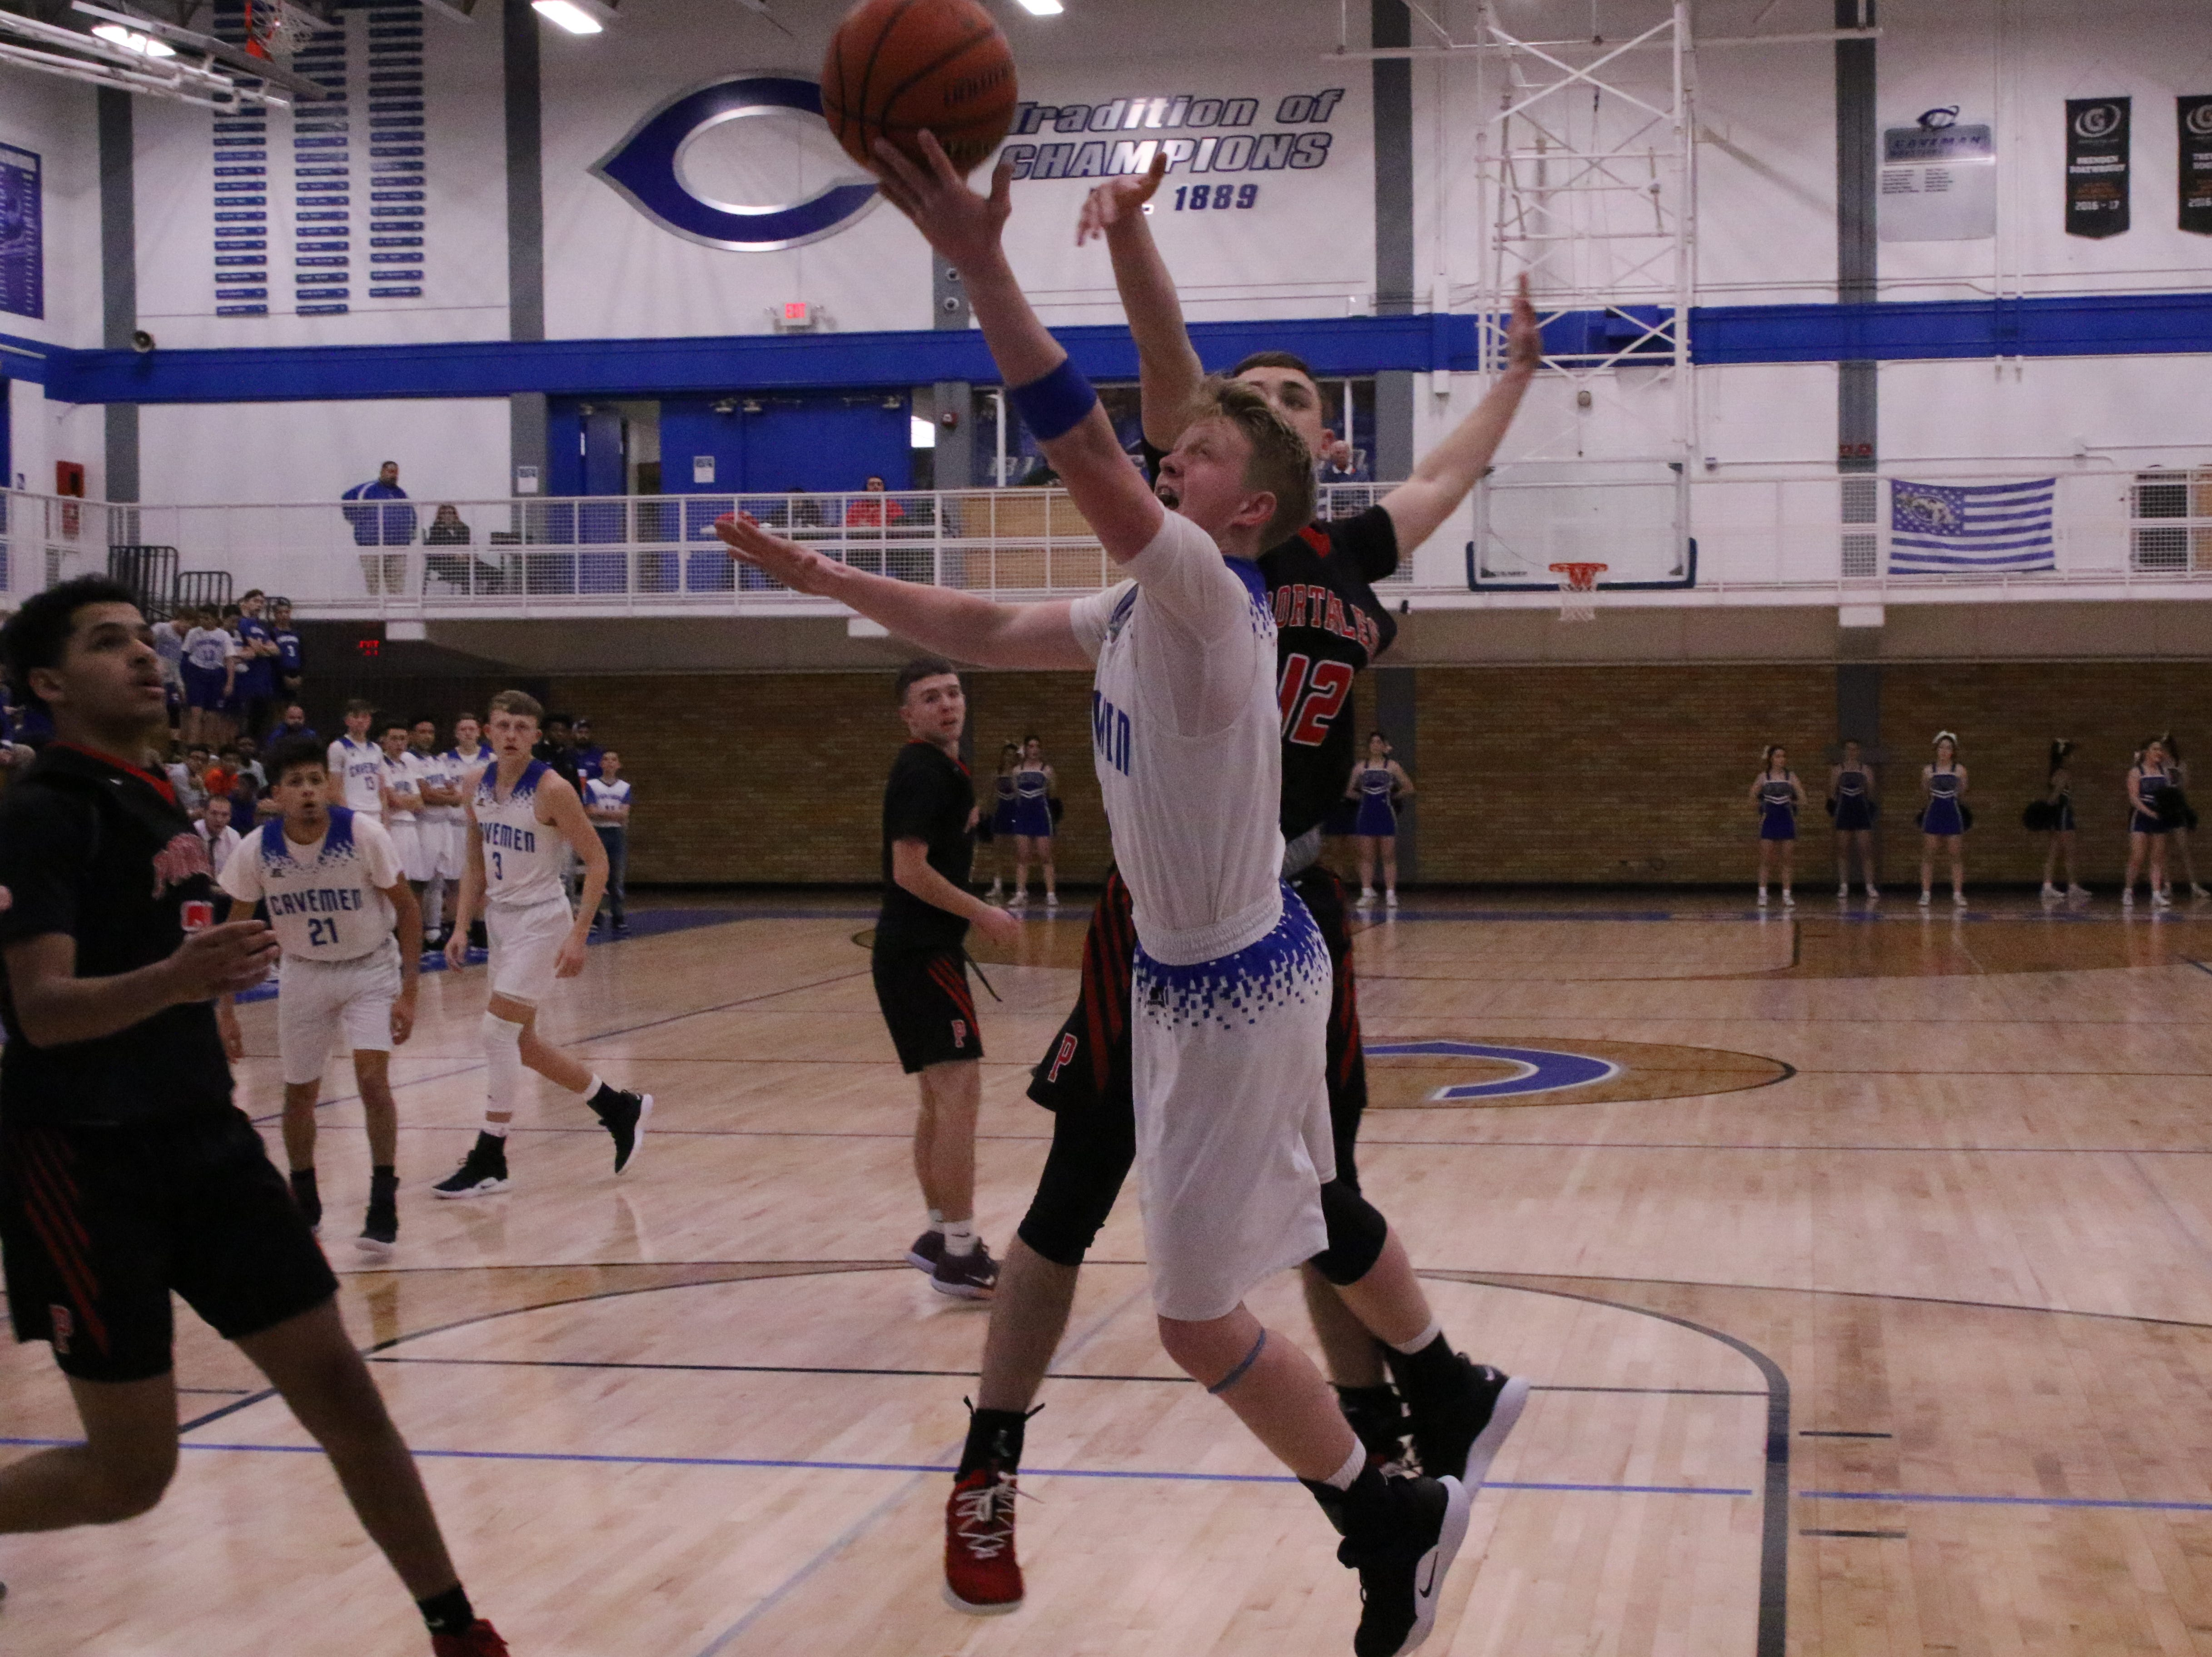 Carlsbad's Andrew Miller gets off a layup against Portales during the first half of Tuesday's game. Miller finished with 14 points.